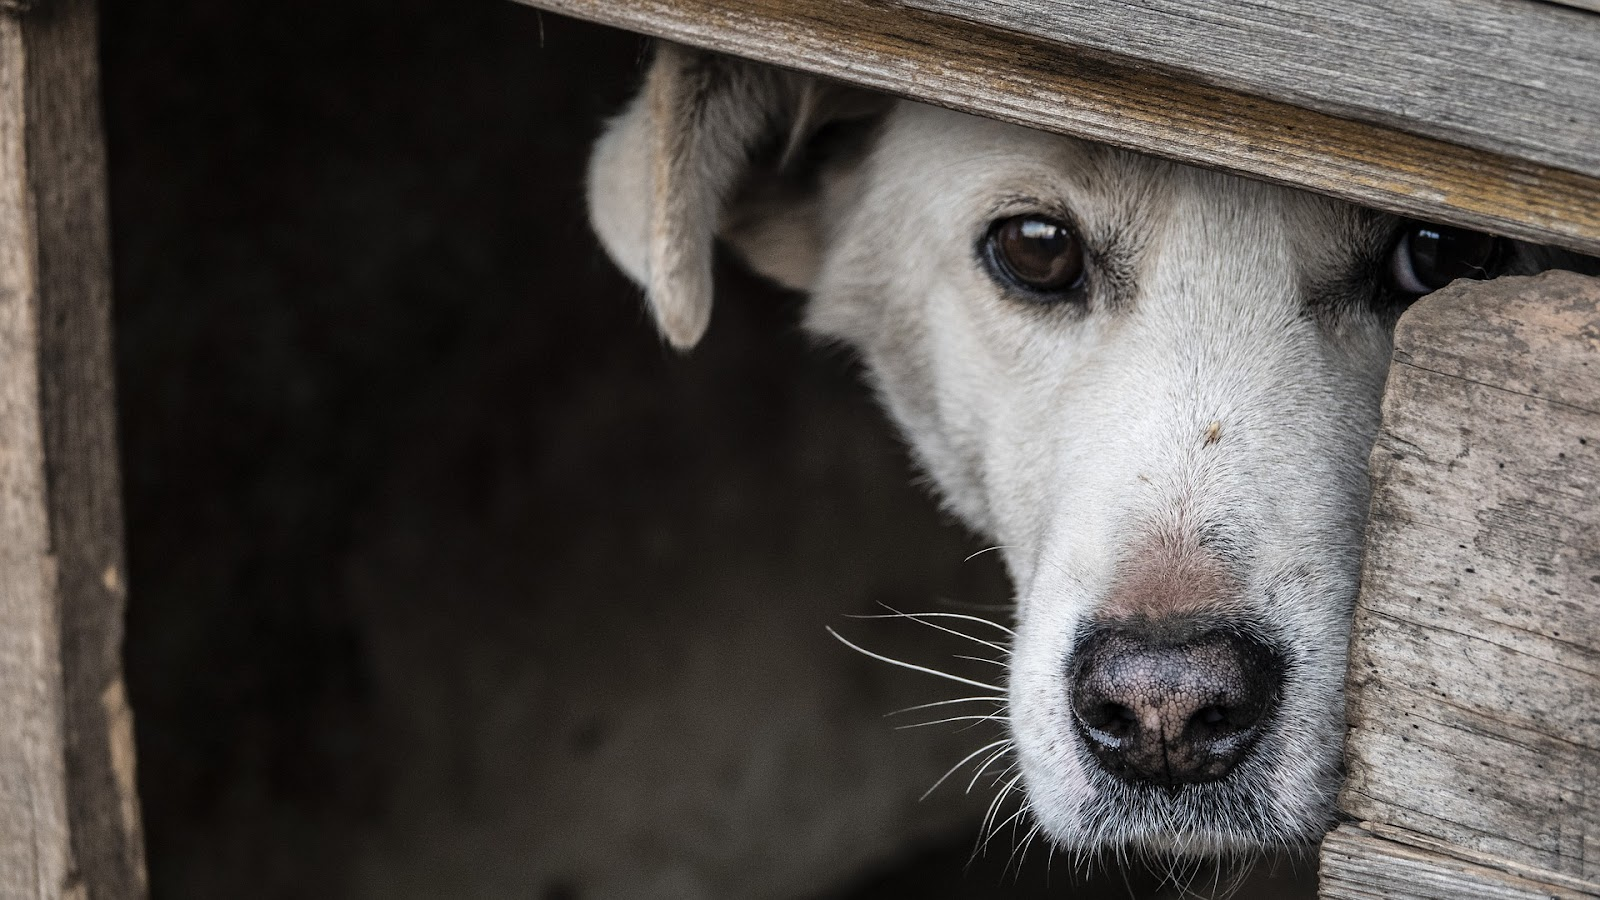 scared white dog hiding behind wooden fence planks